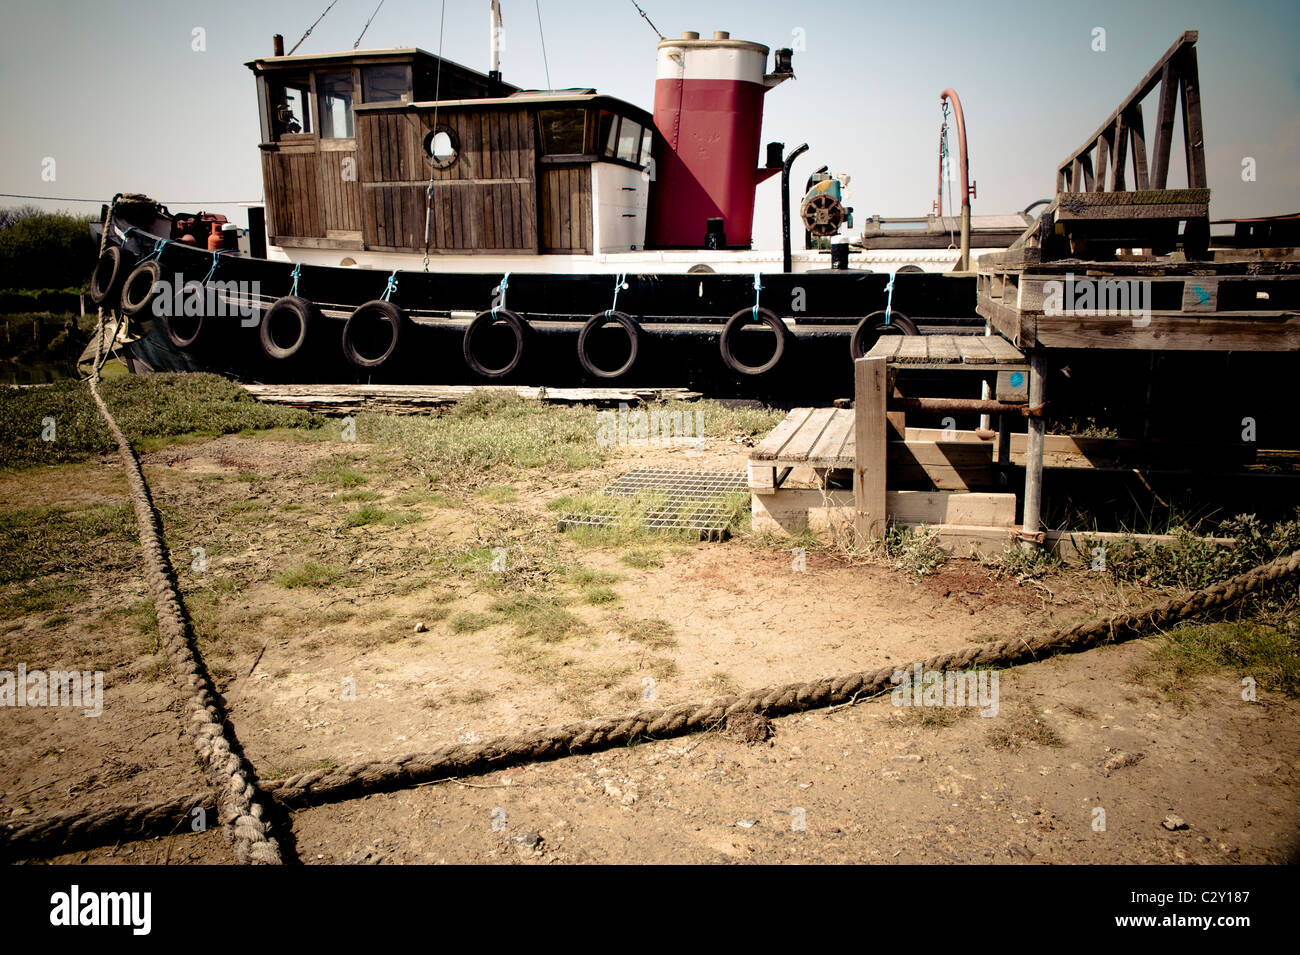 Wendy Ann 2, a tug style boat tied up on the river Arun in Littlehampton, West Sussex - Stock Image